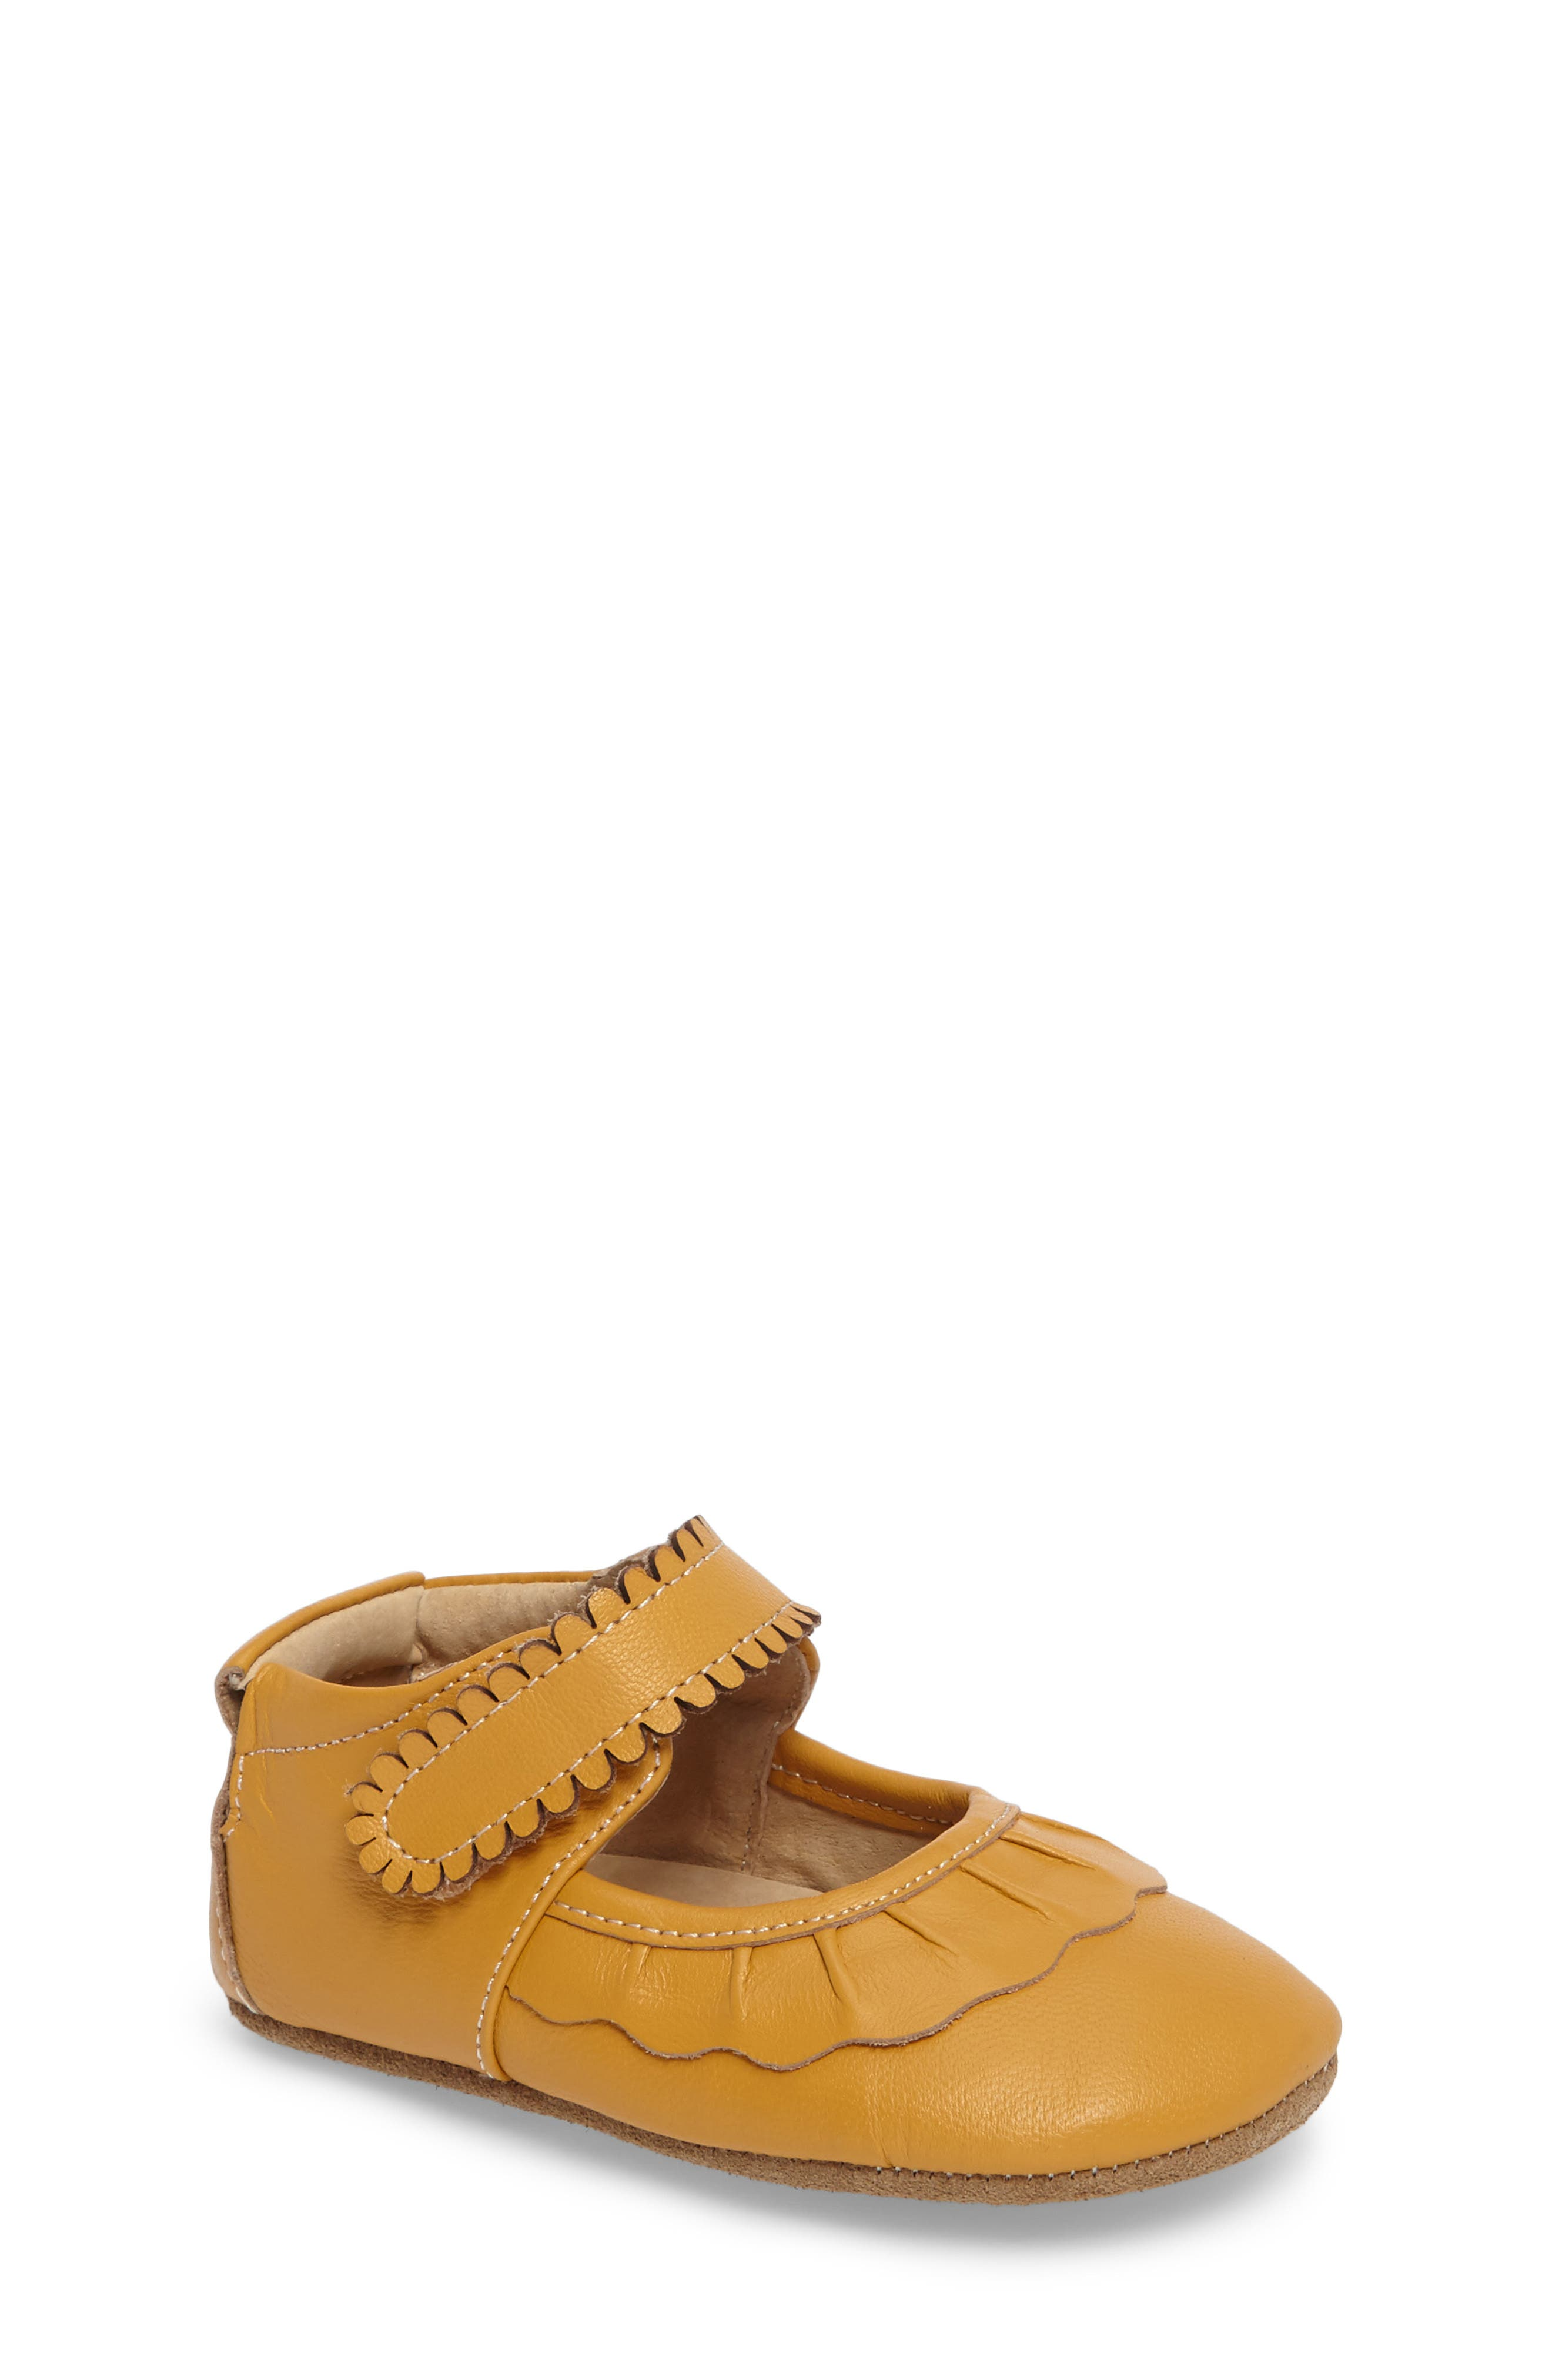 'Ruche' Mary Jane Crib Shoe,                         Main,                         color, BUTTERSCOTCH LEATHER